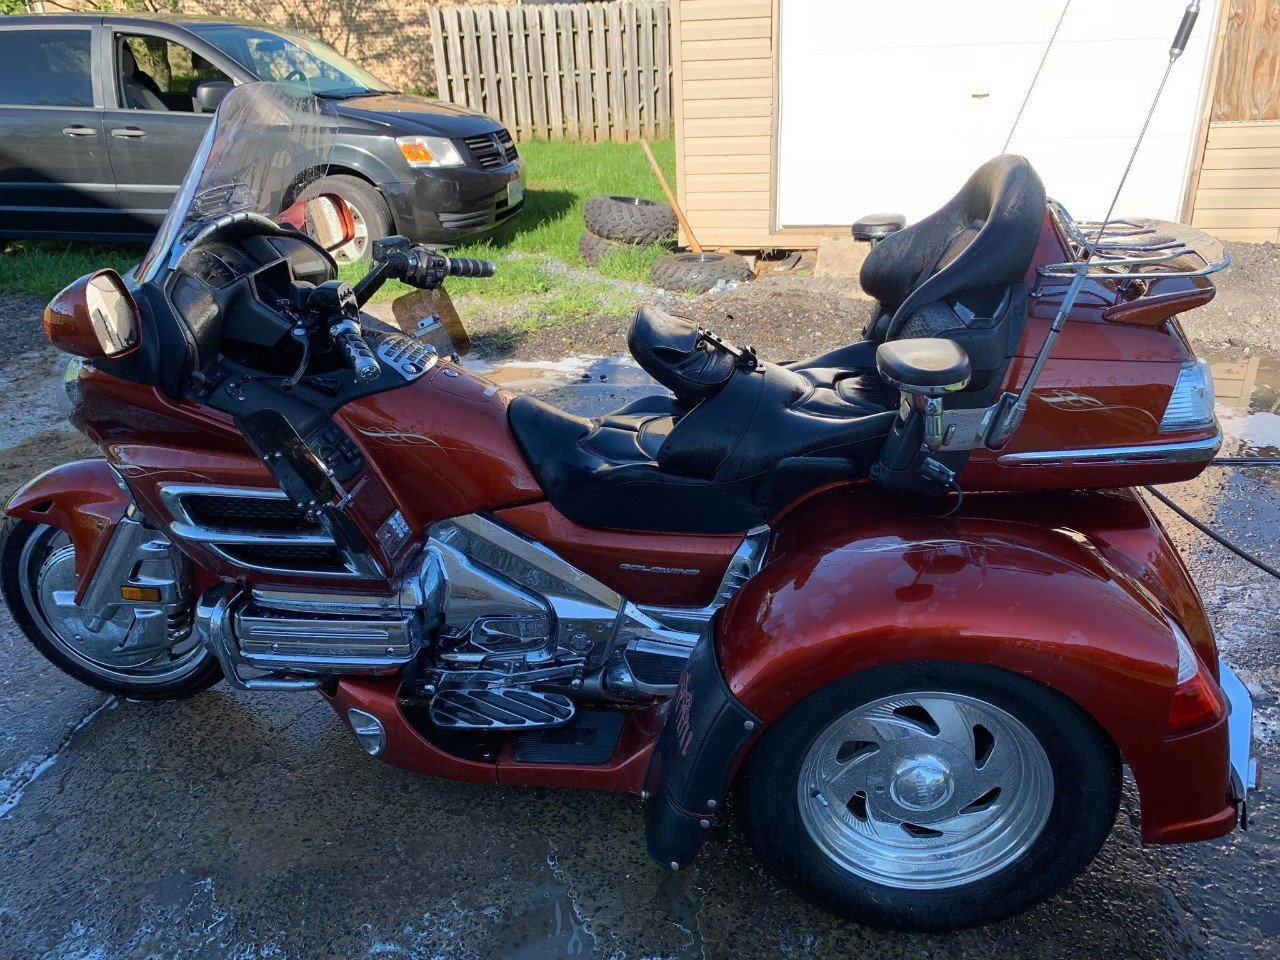 223 Honda Gold Wing 2001461 Motorcycles For Sale Cycle Trader Heated Grips Goldwing Wiring Diagram